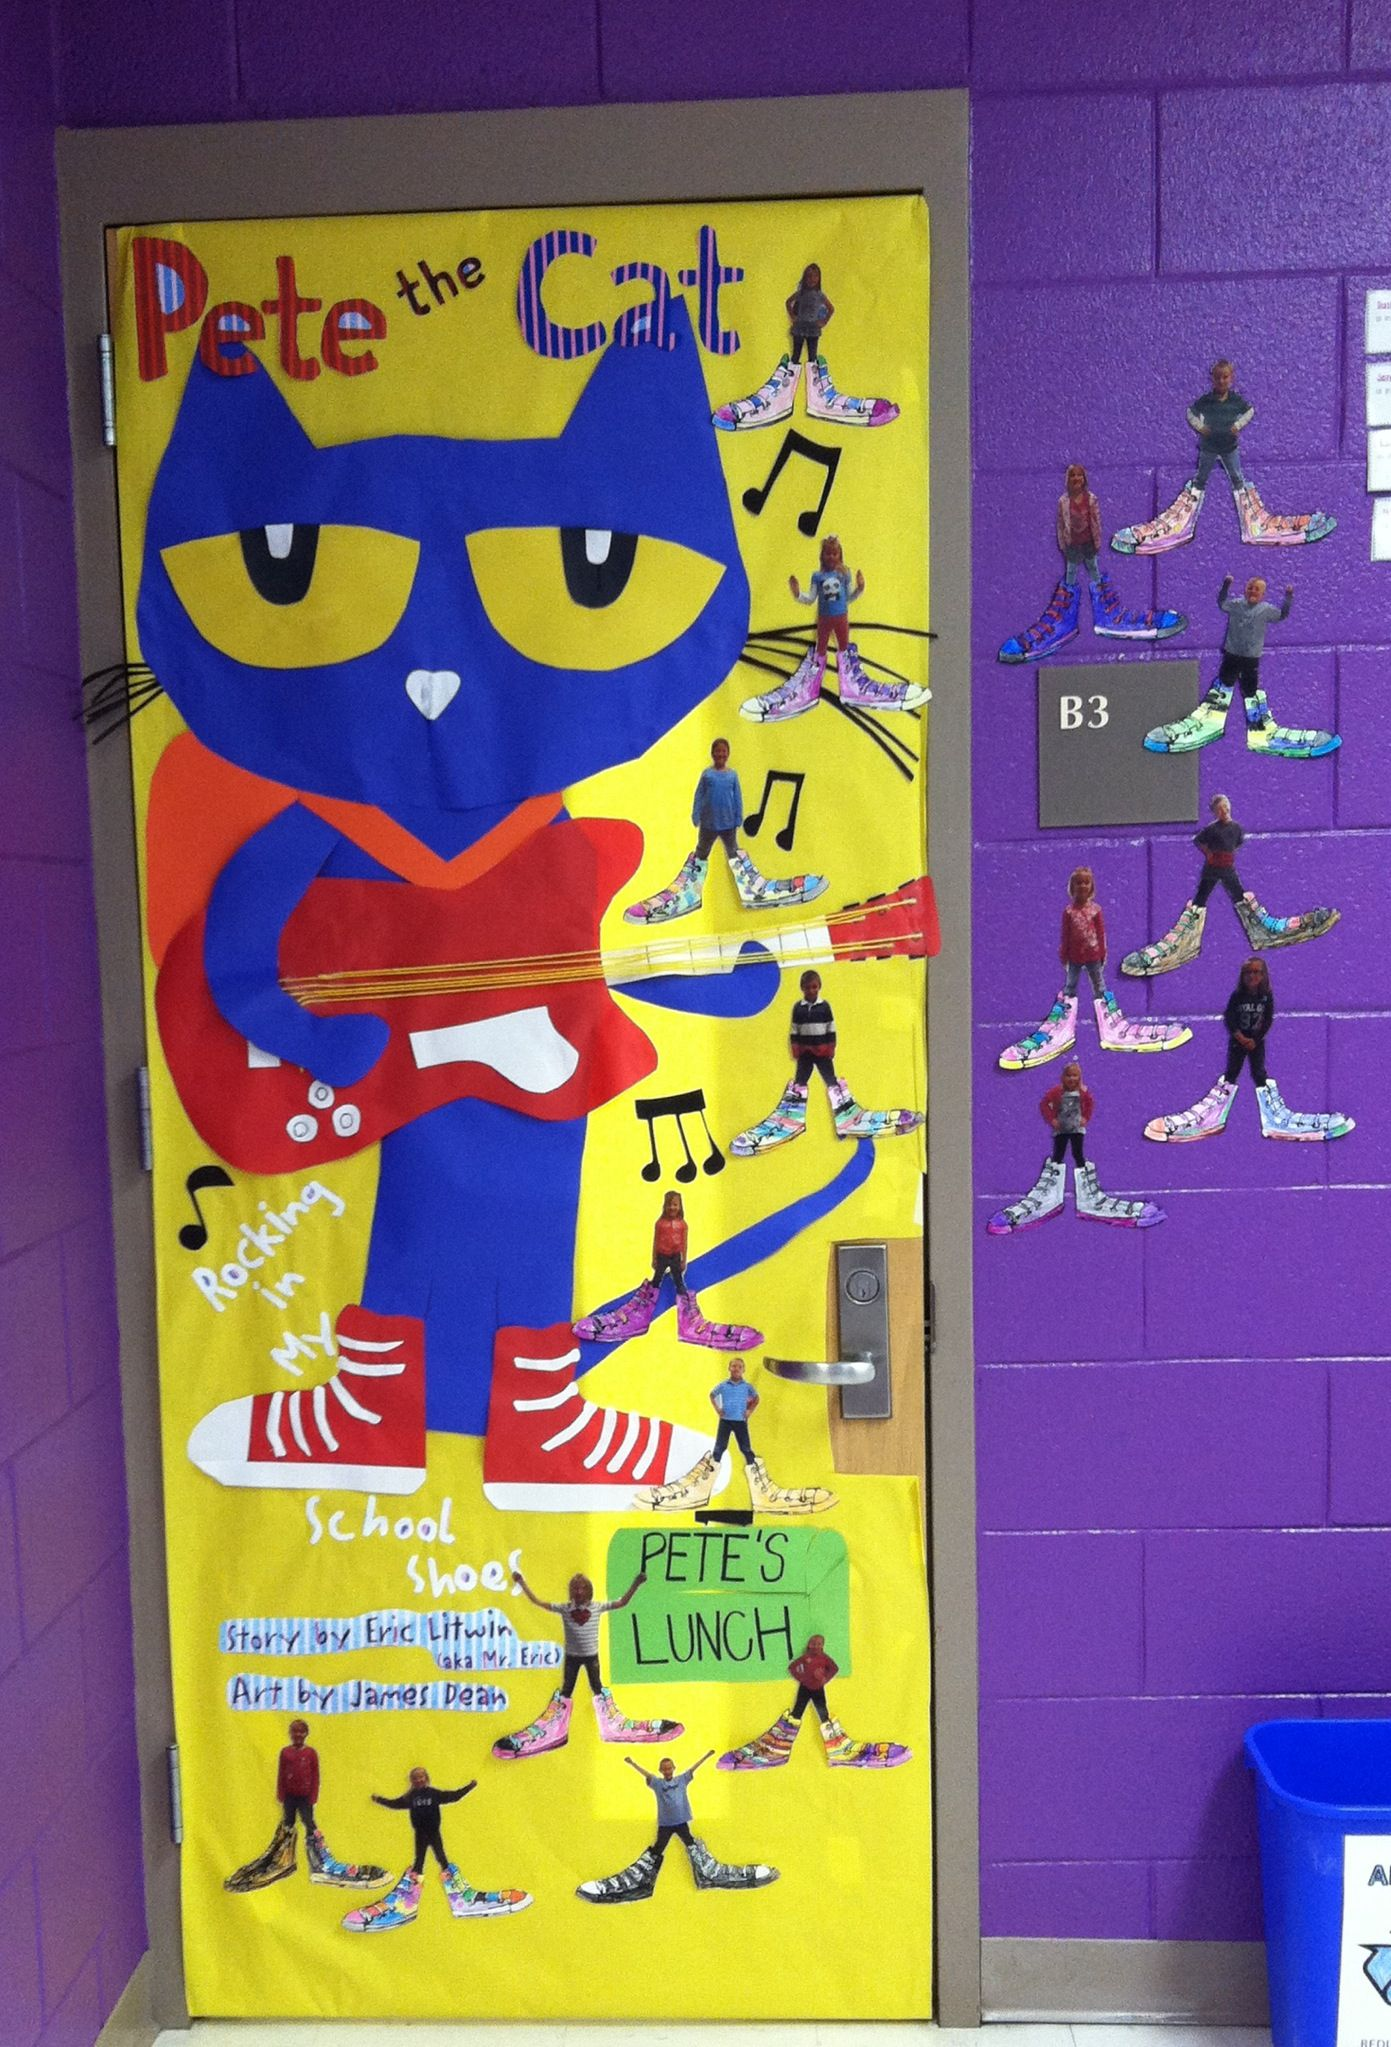 Pete The Cat Door...love The Pictures Of The Kids With Big Shoes